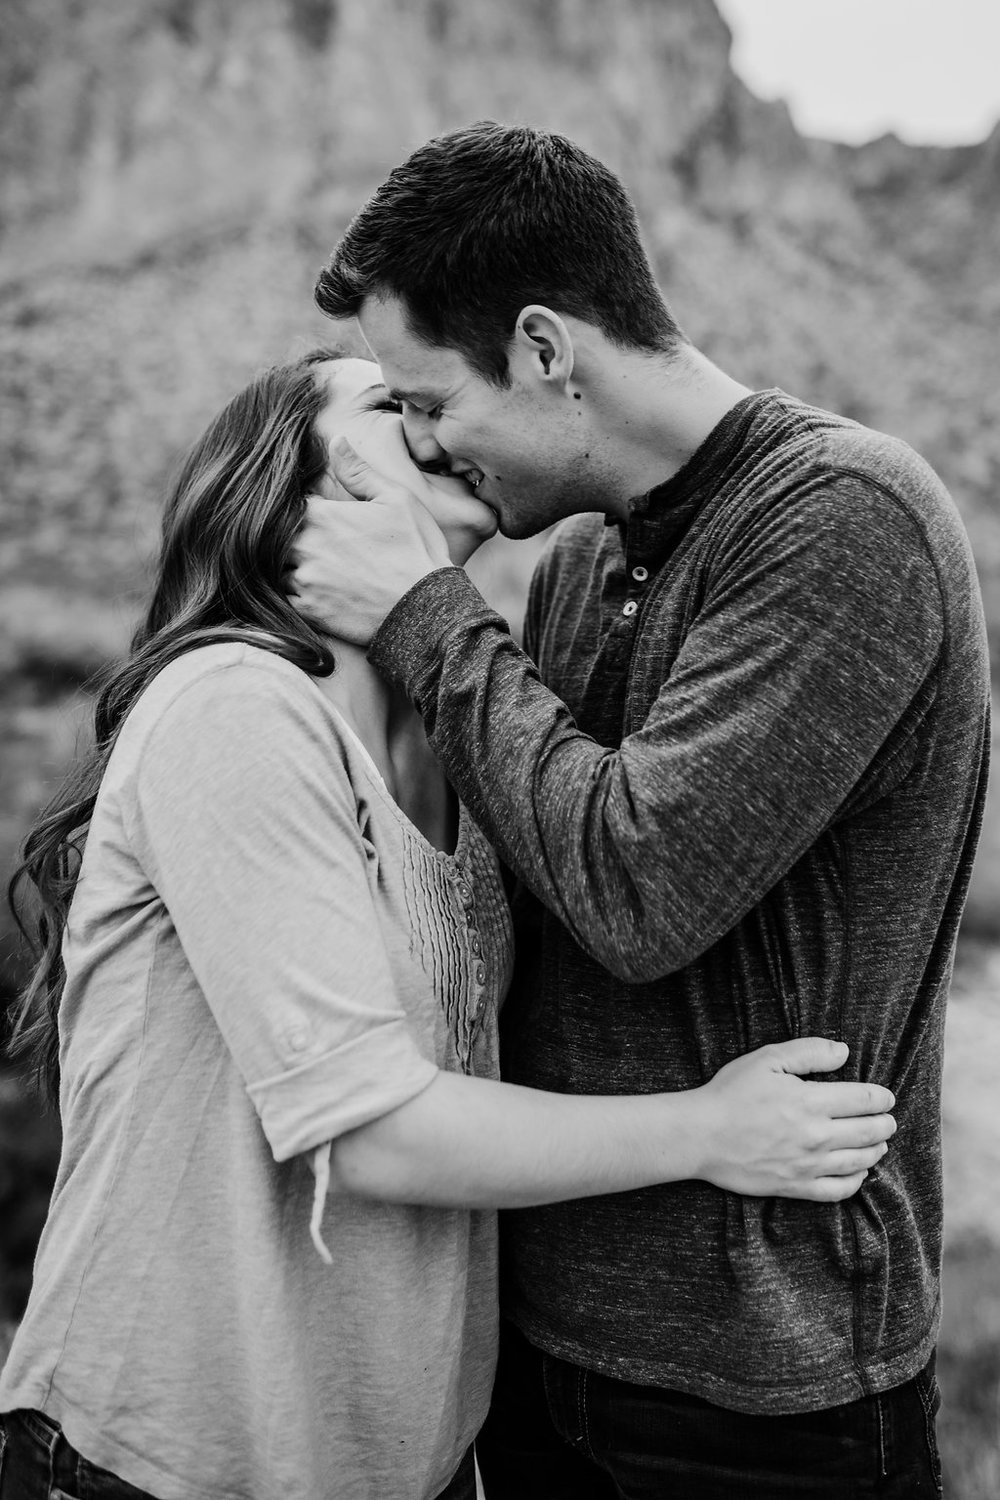 black and white engagement photos calli richards cache valley utah engagement photographer